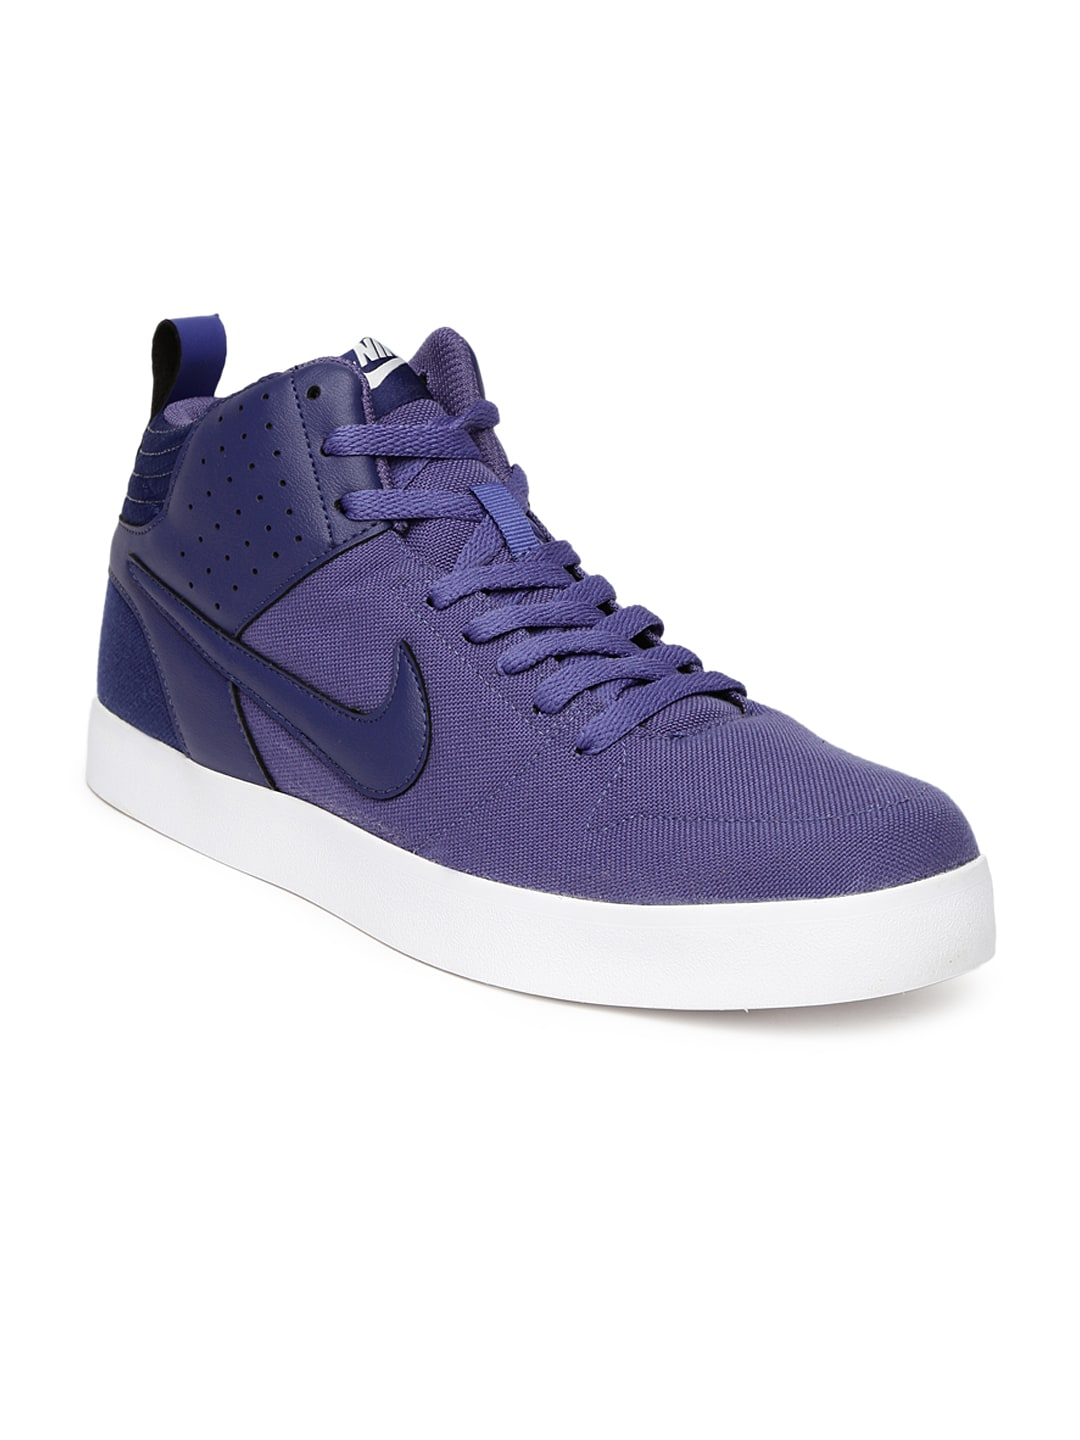 Cool Nike Casual Shoes For Women 2013 Nike Sweet Classic Canvas Great